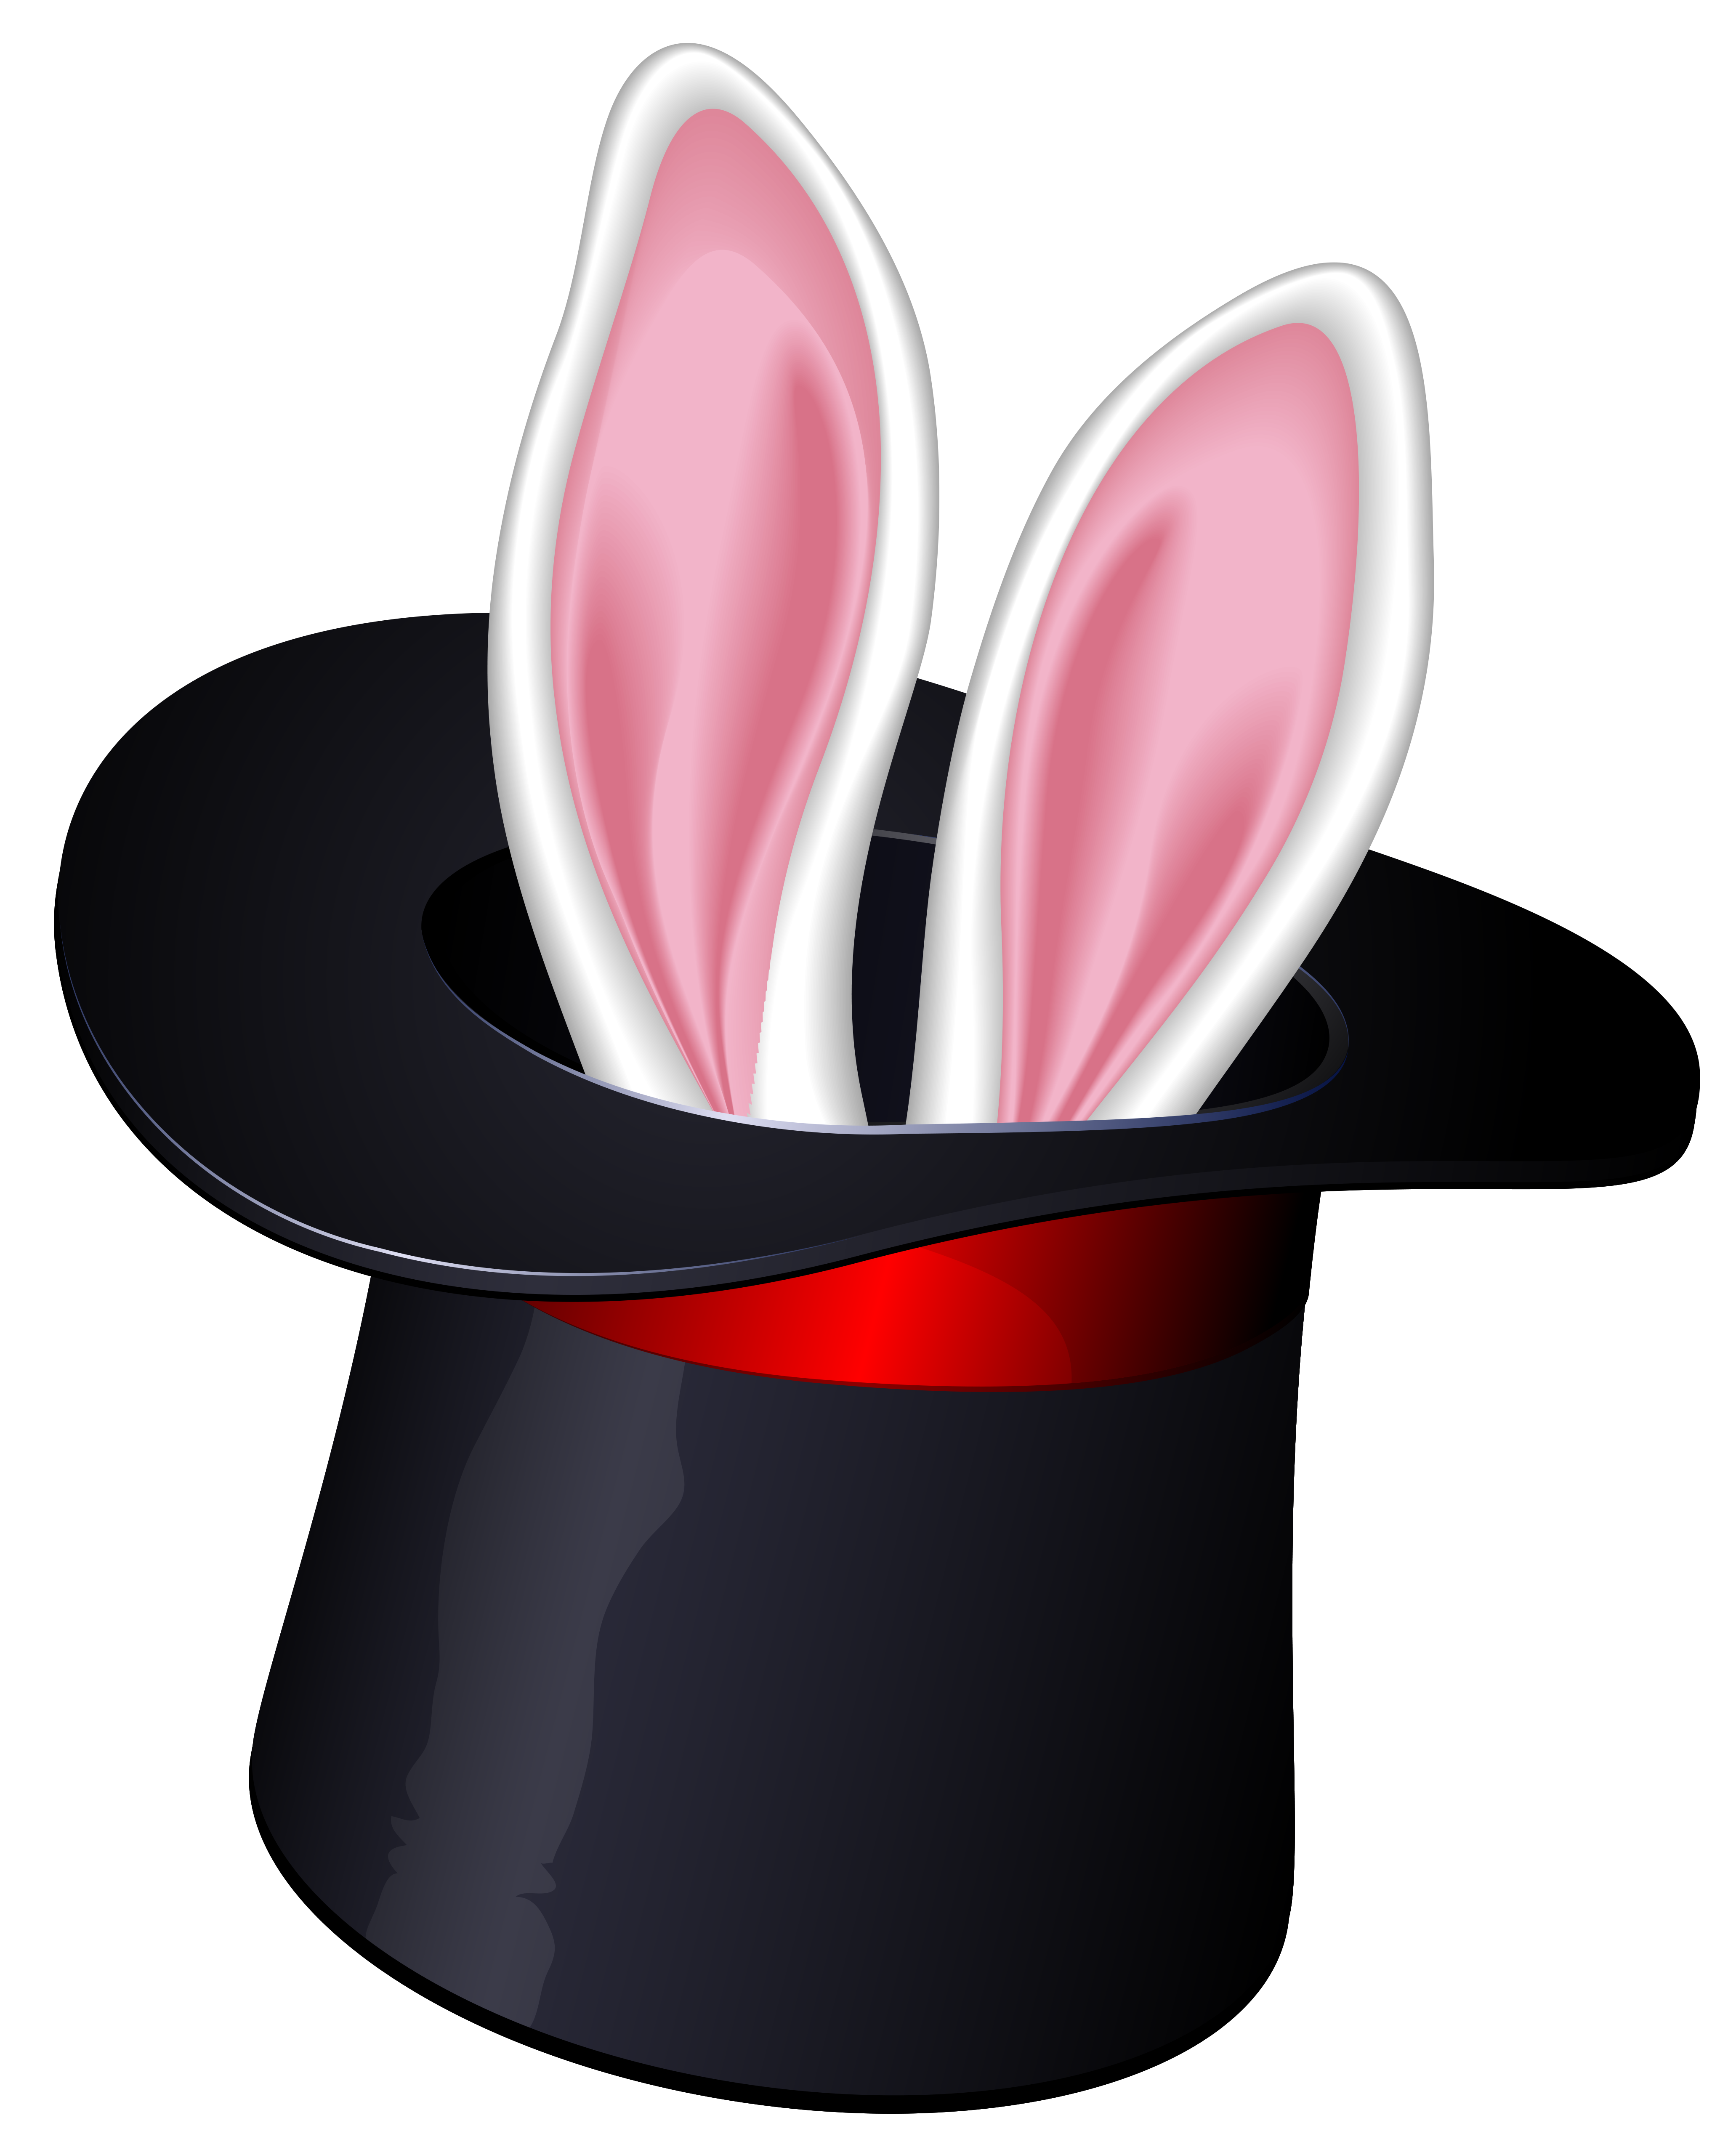 4125x5102 Magic Tophat Png Clipartu200b Gallery Yopriceville